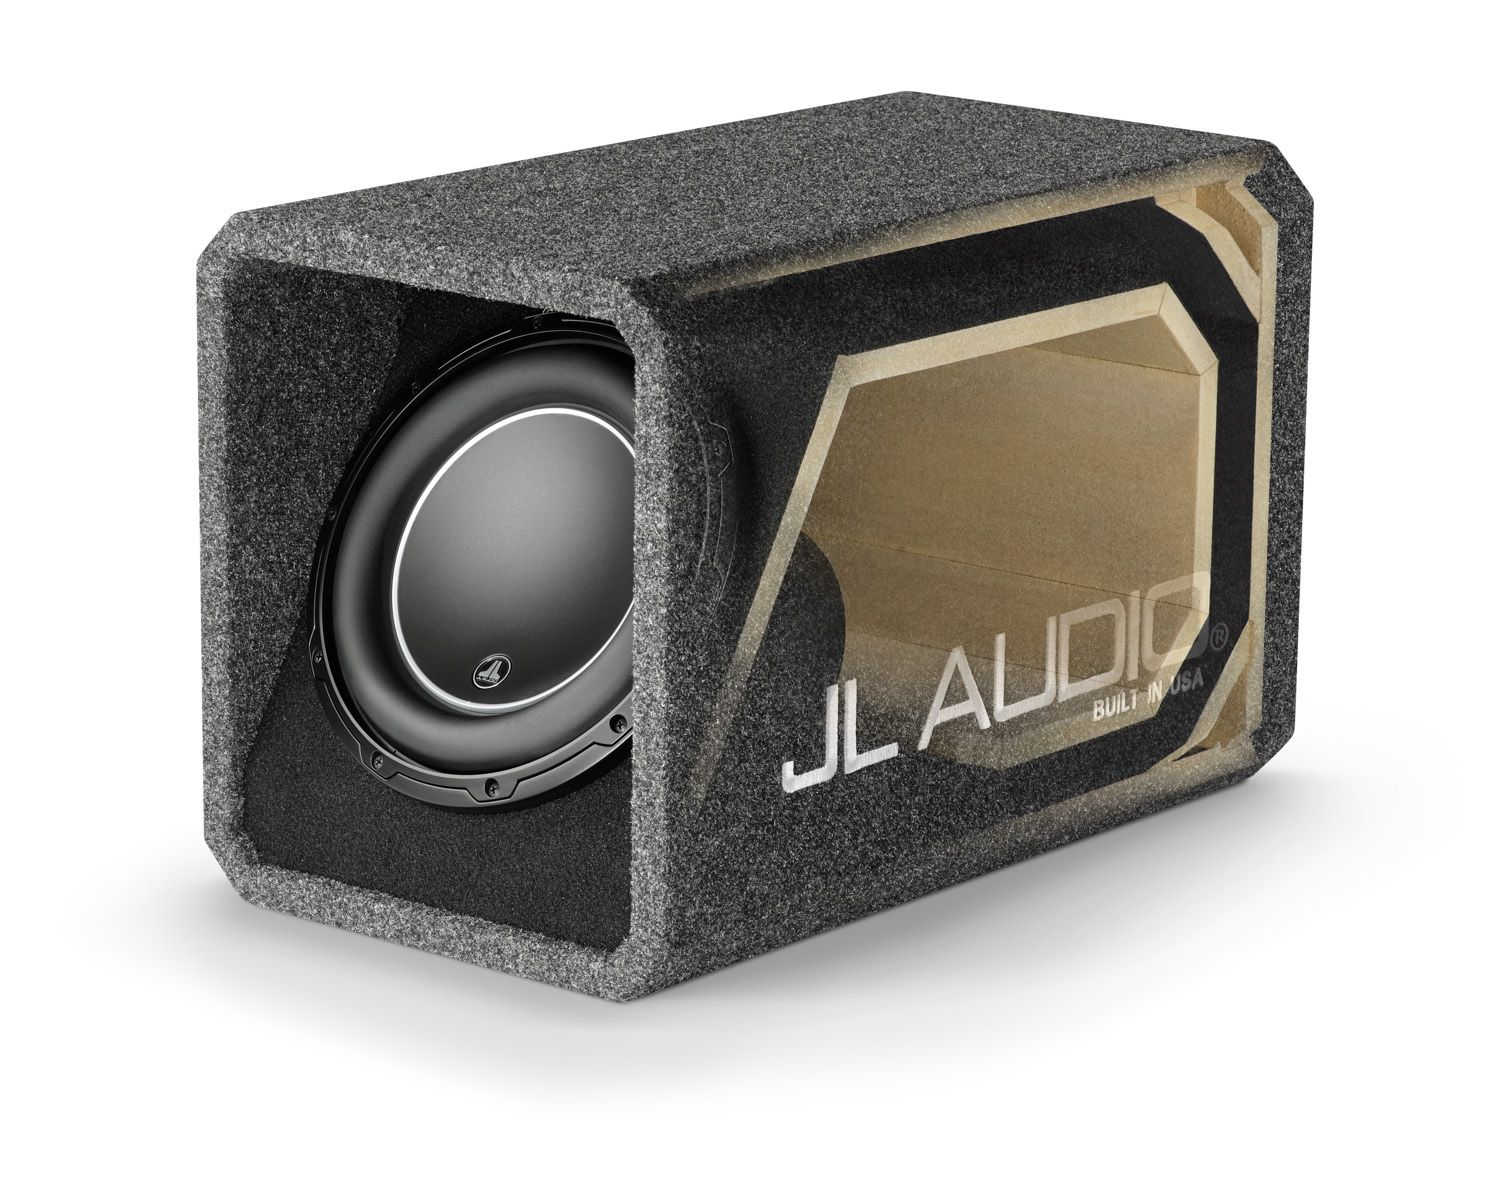 jl audio introduces a new high-output subwoofer system based on